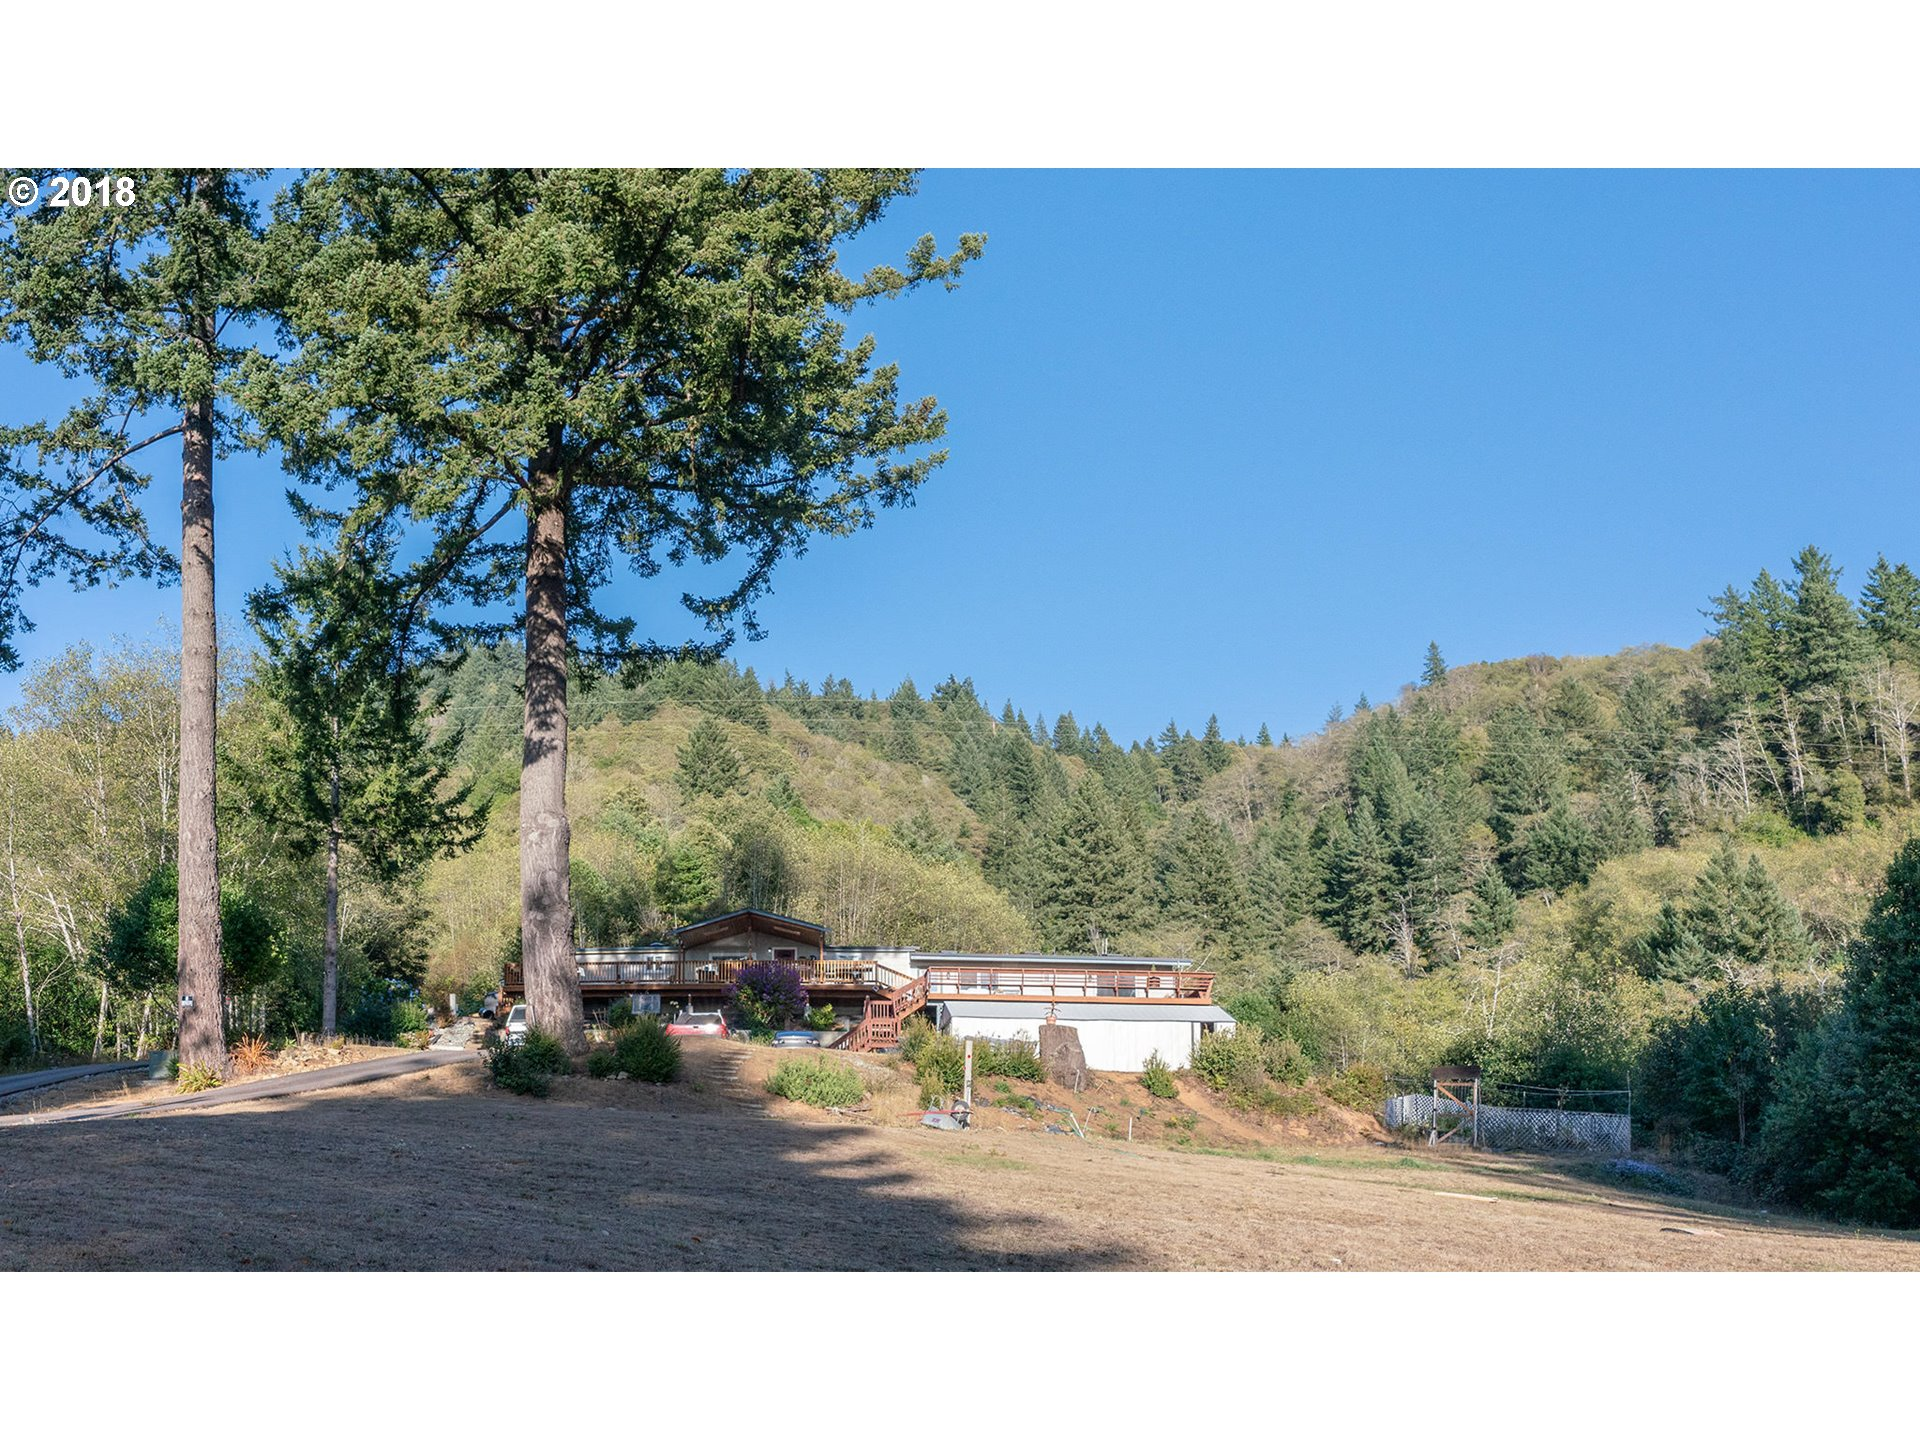 Brookings, OR 5 Bedroom Home For Sale